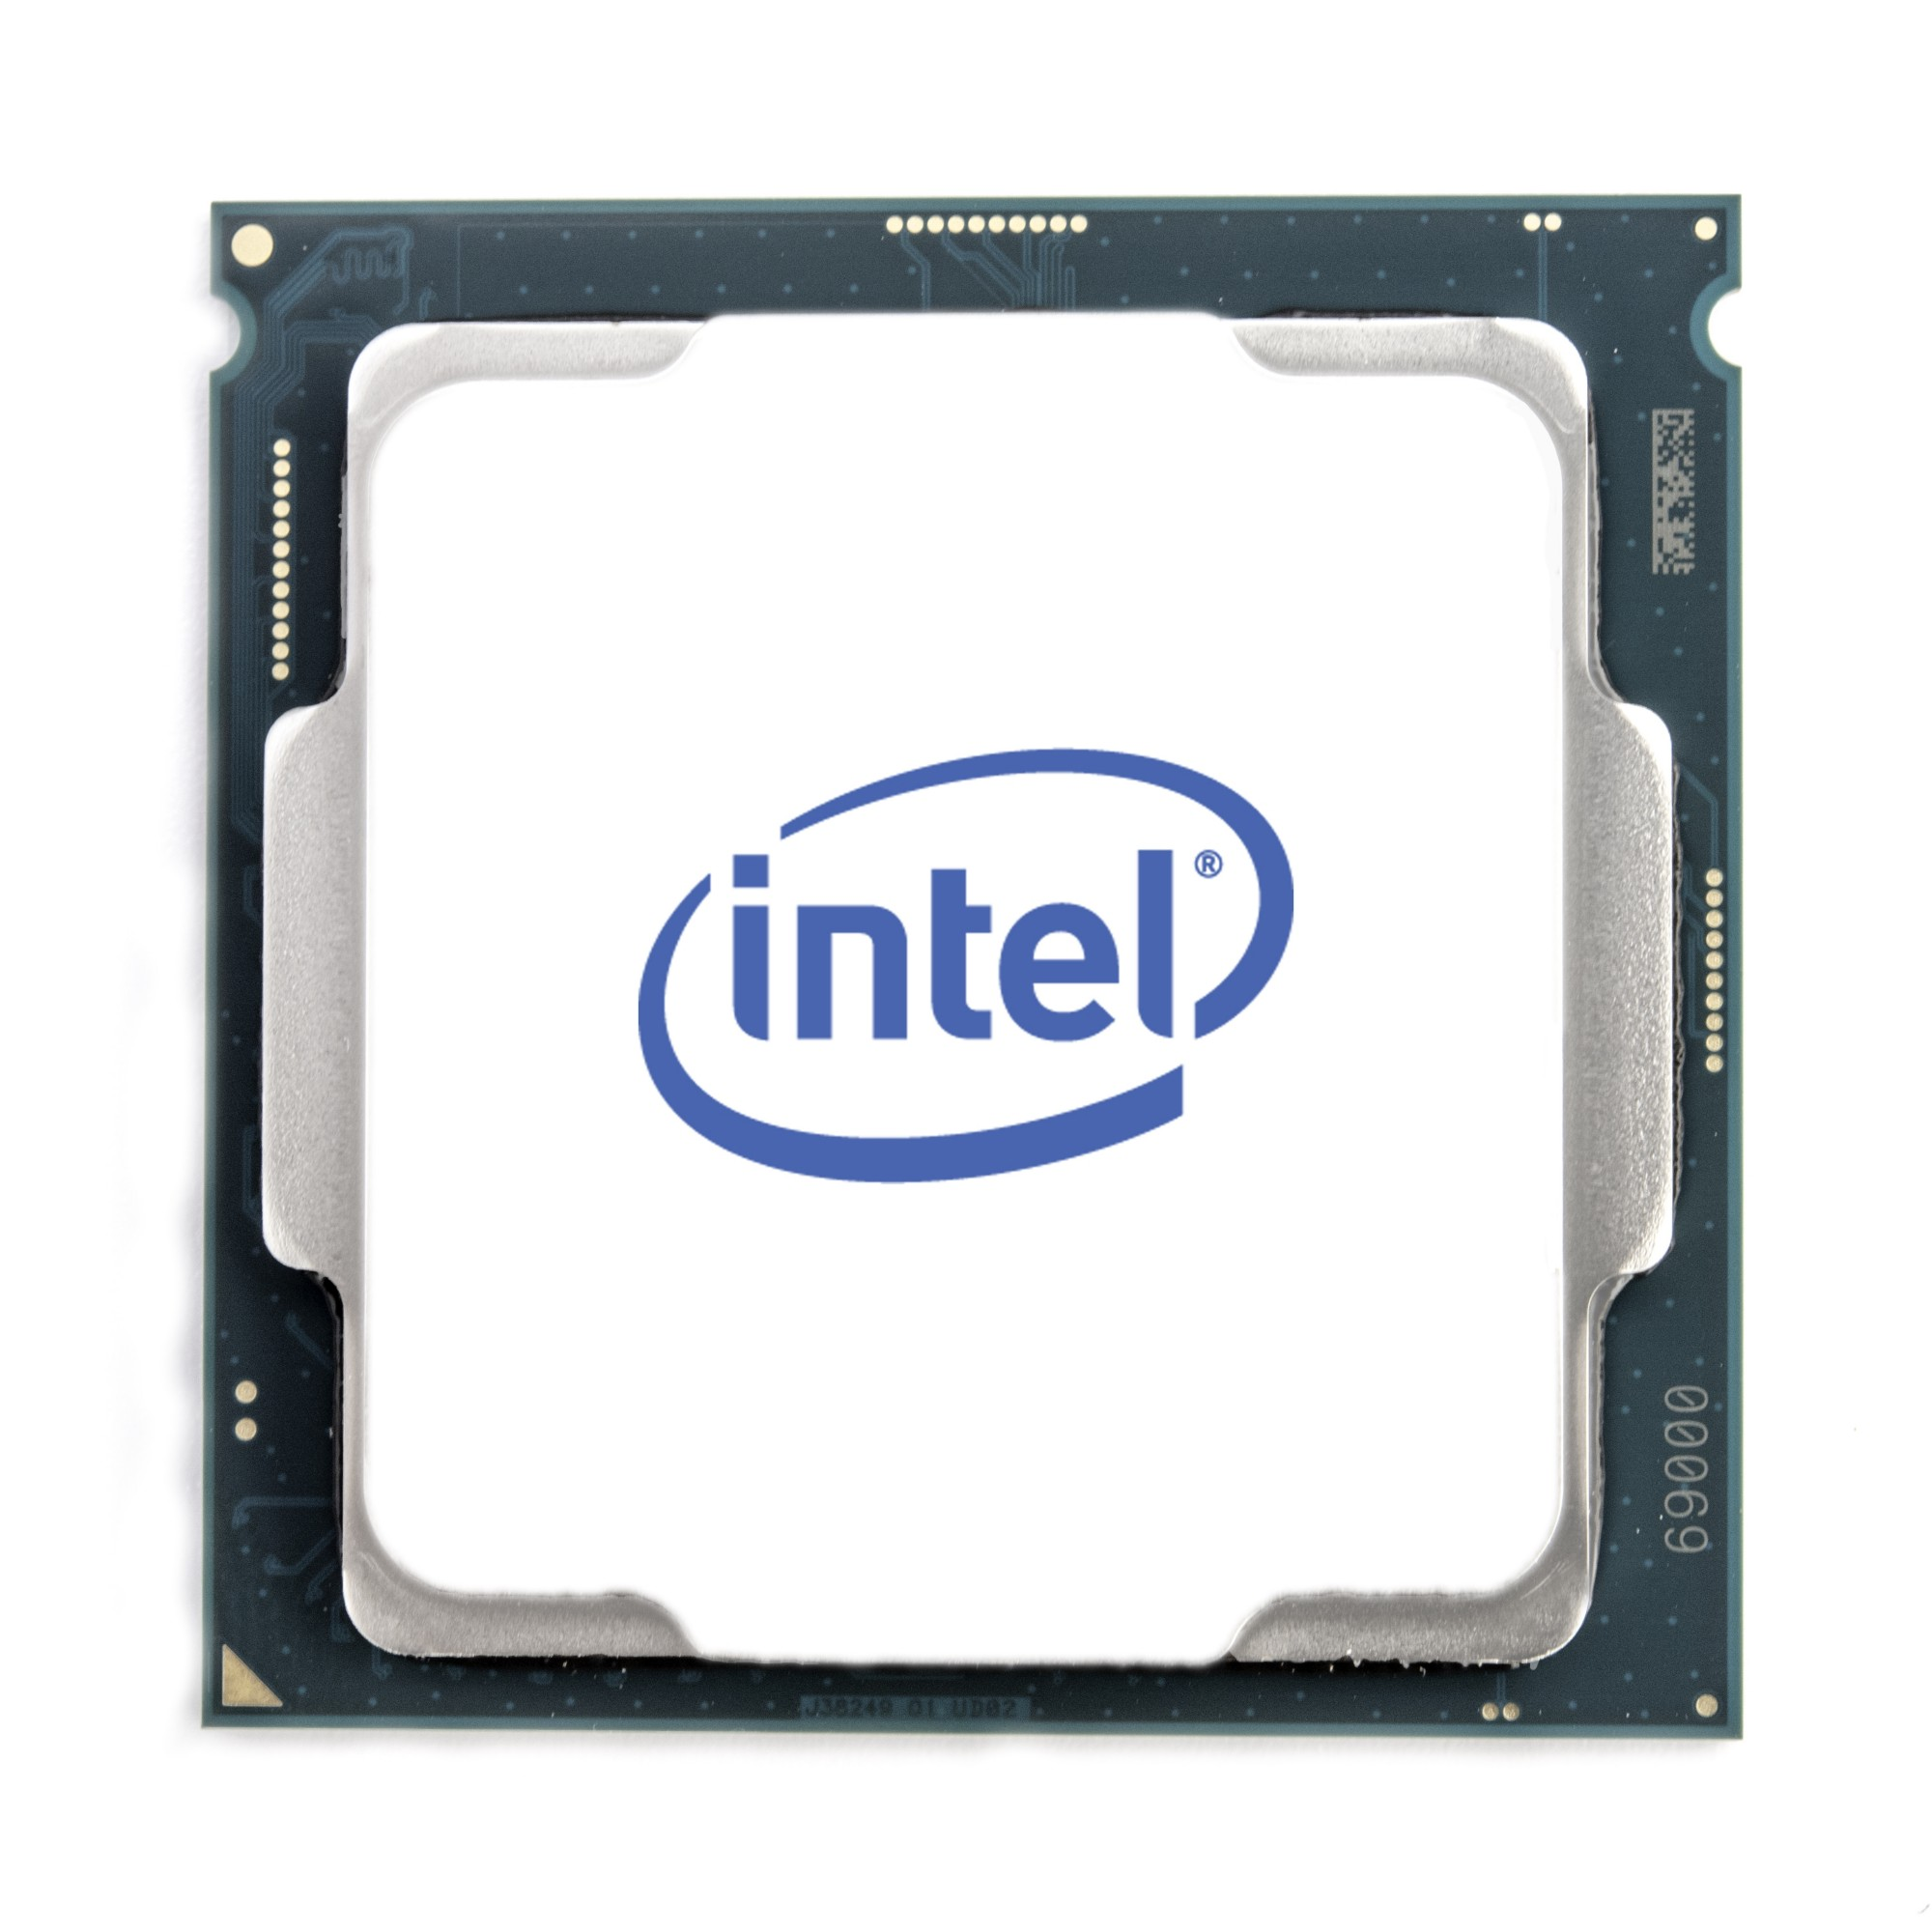 Intel Xeon 4208 processor 2.1 GHz 11 MB